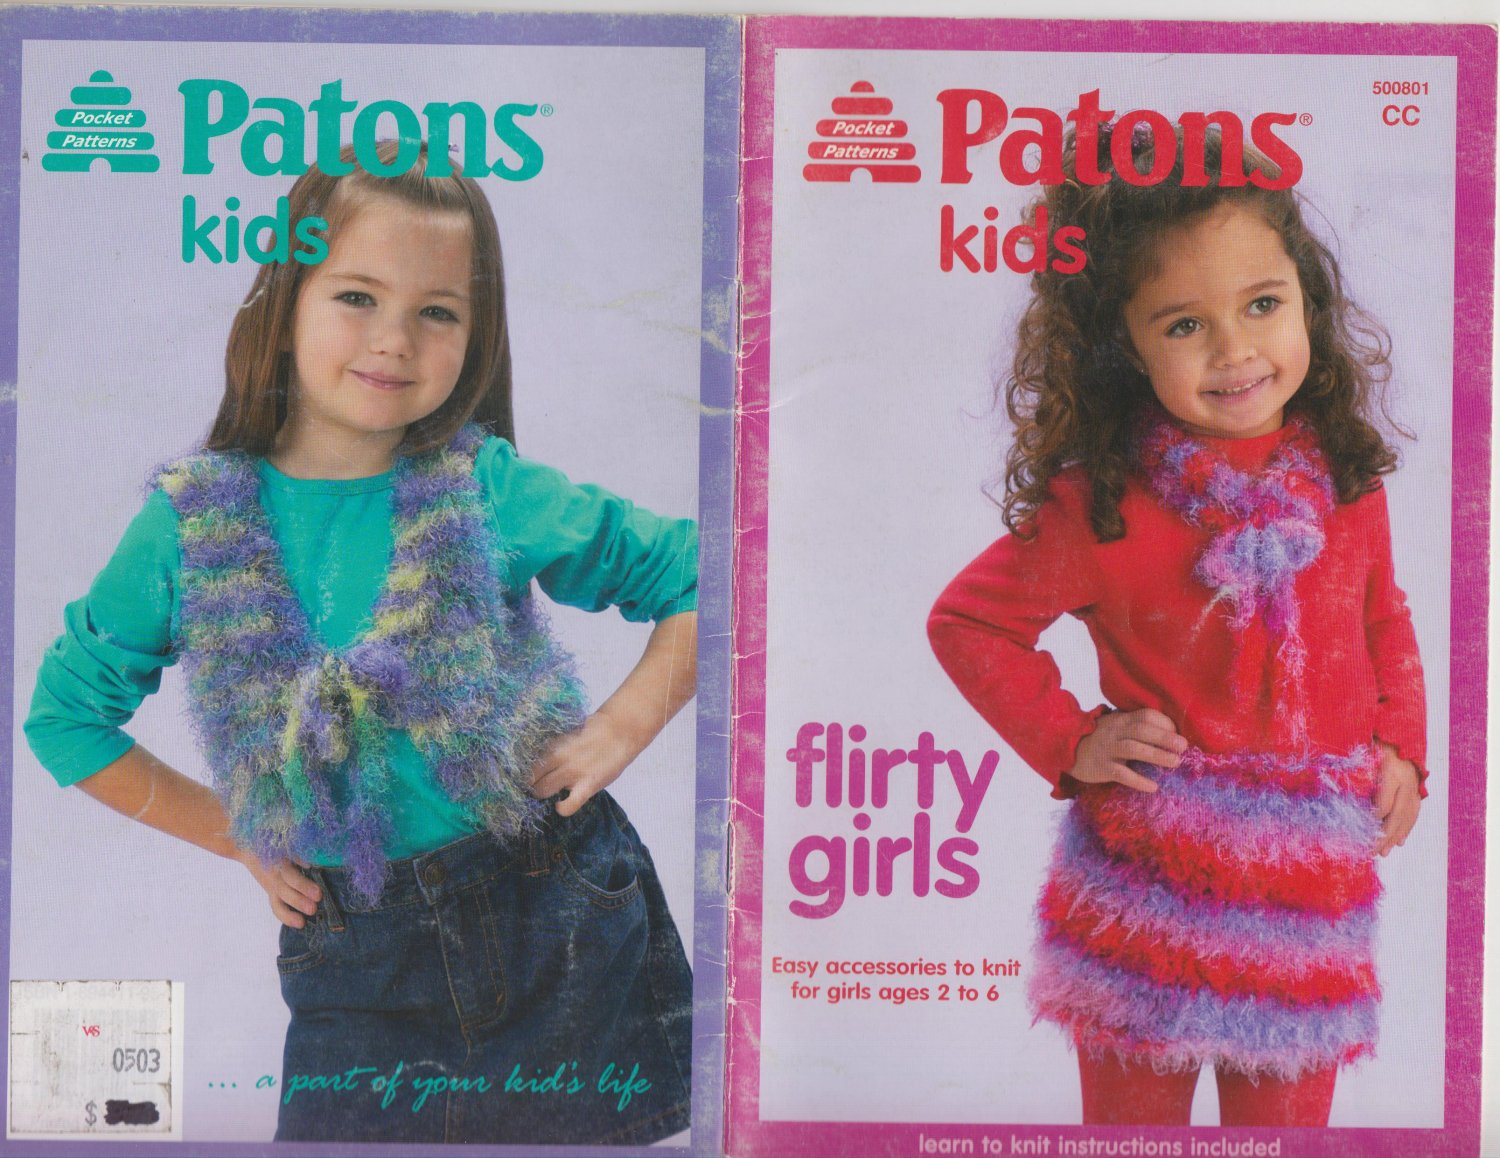 Patons 2003 Knitting Pattern Booklet Patons Kids Flirty Girls #500801CC